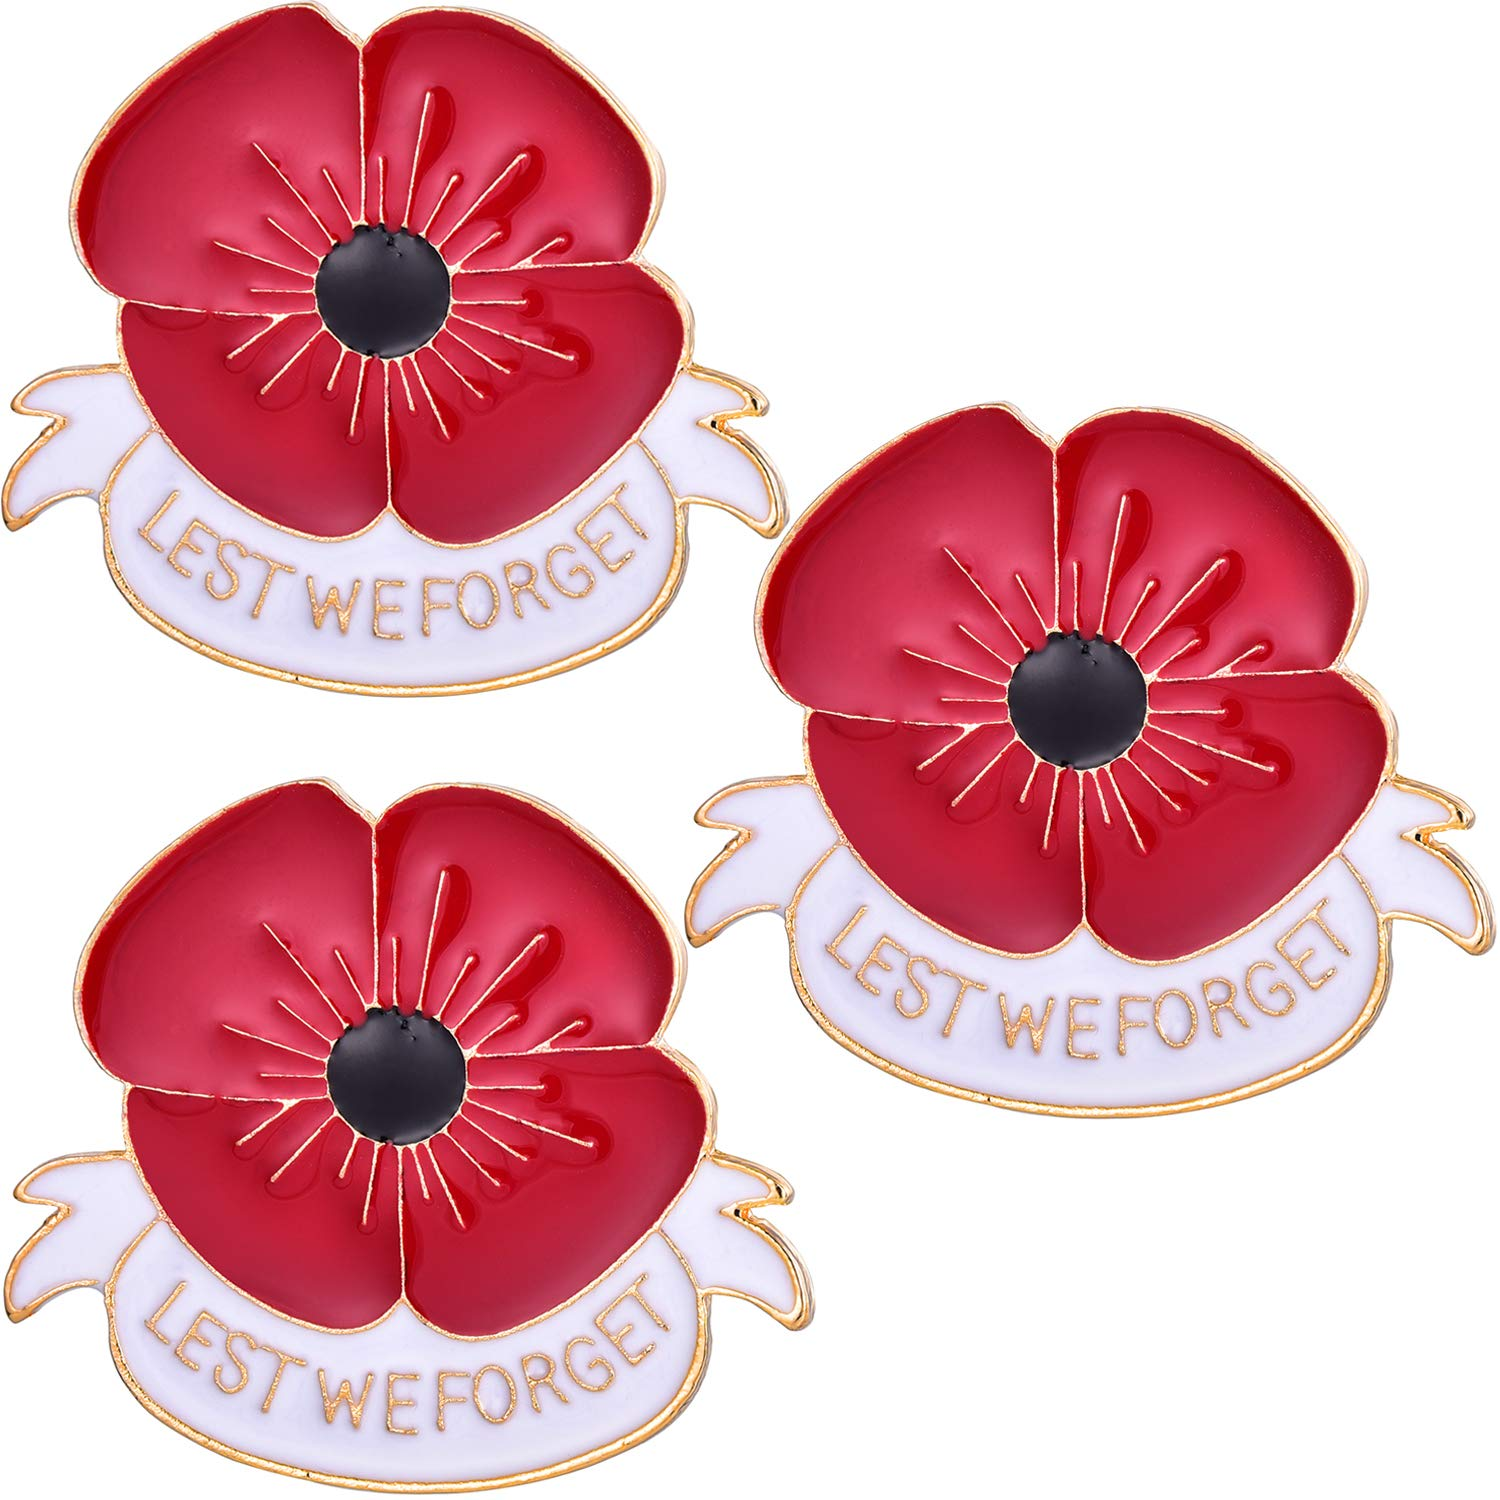 Jantodec 3 Pcs Red Poppy Brooch Lapel Pin Broach Lest We Forget